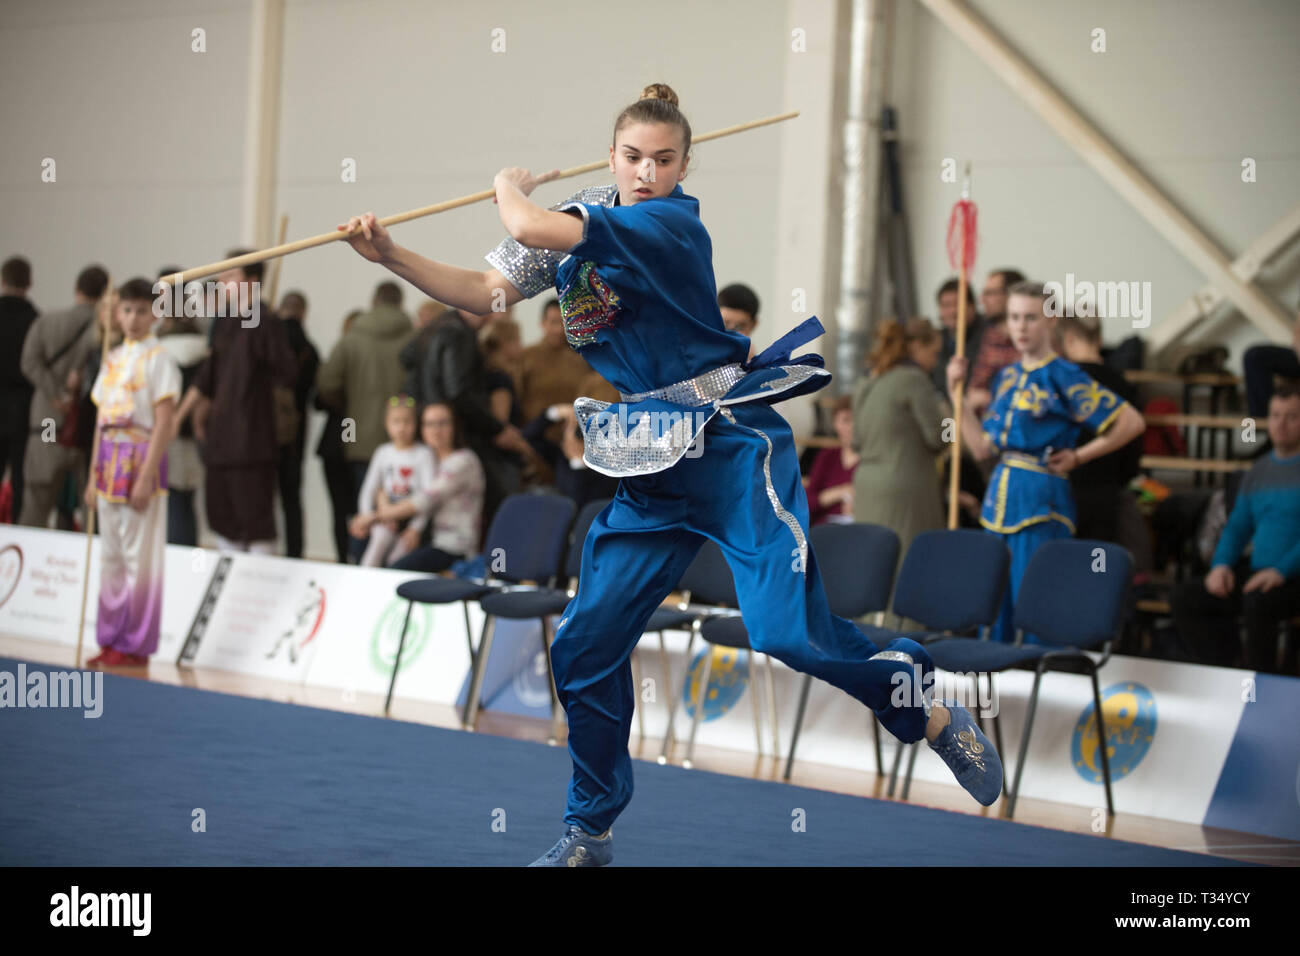 Vilniu, Lithuania  6th Apr, 2019  An athlete performs at the